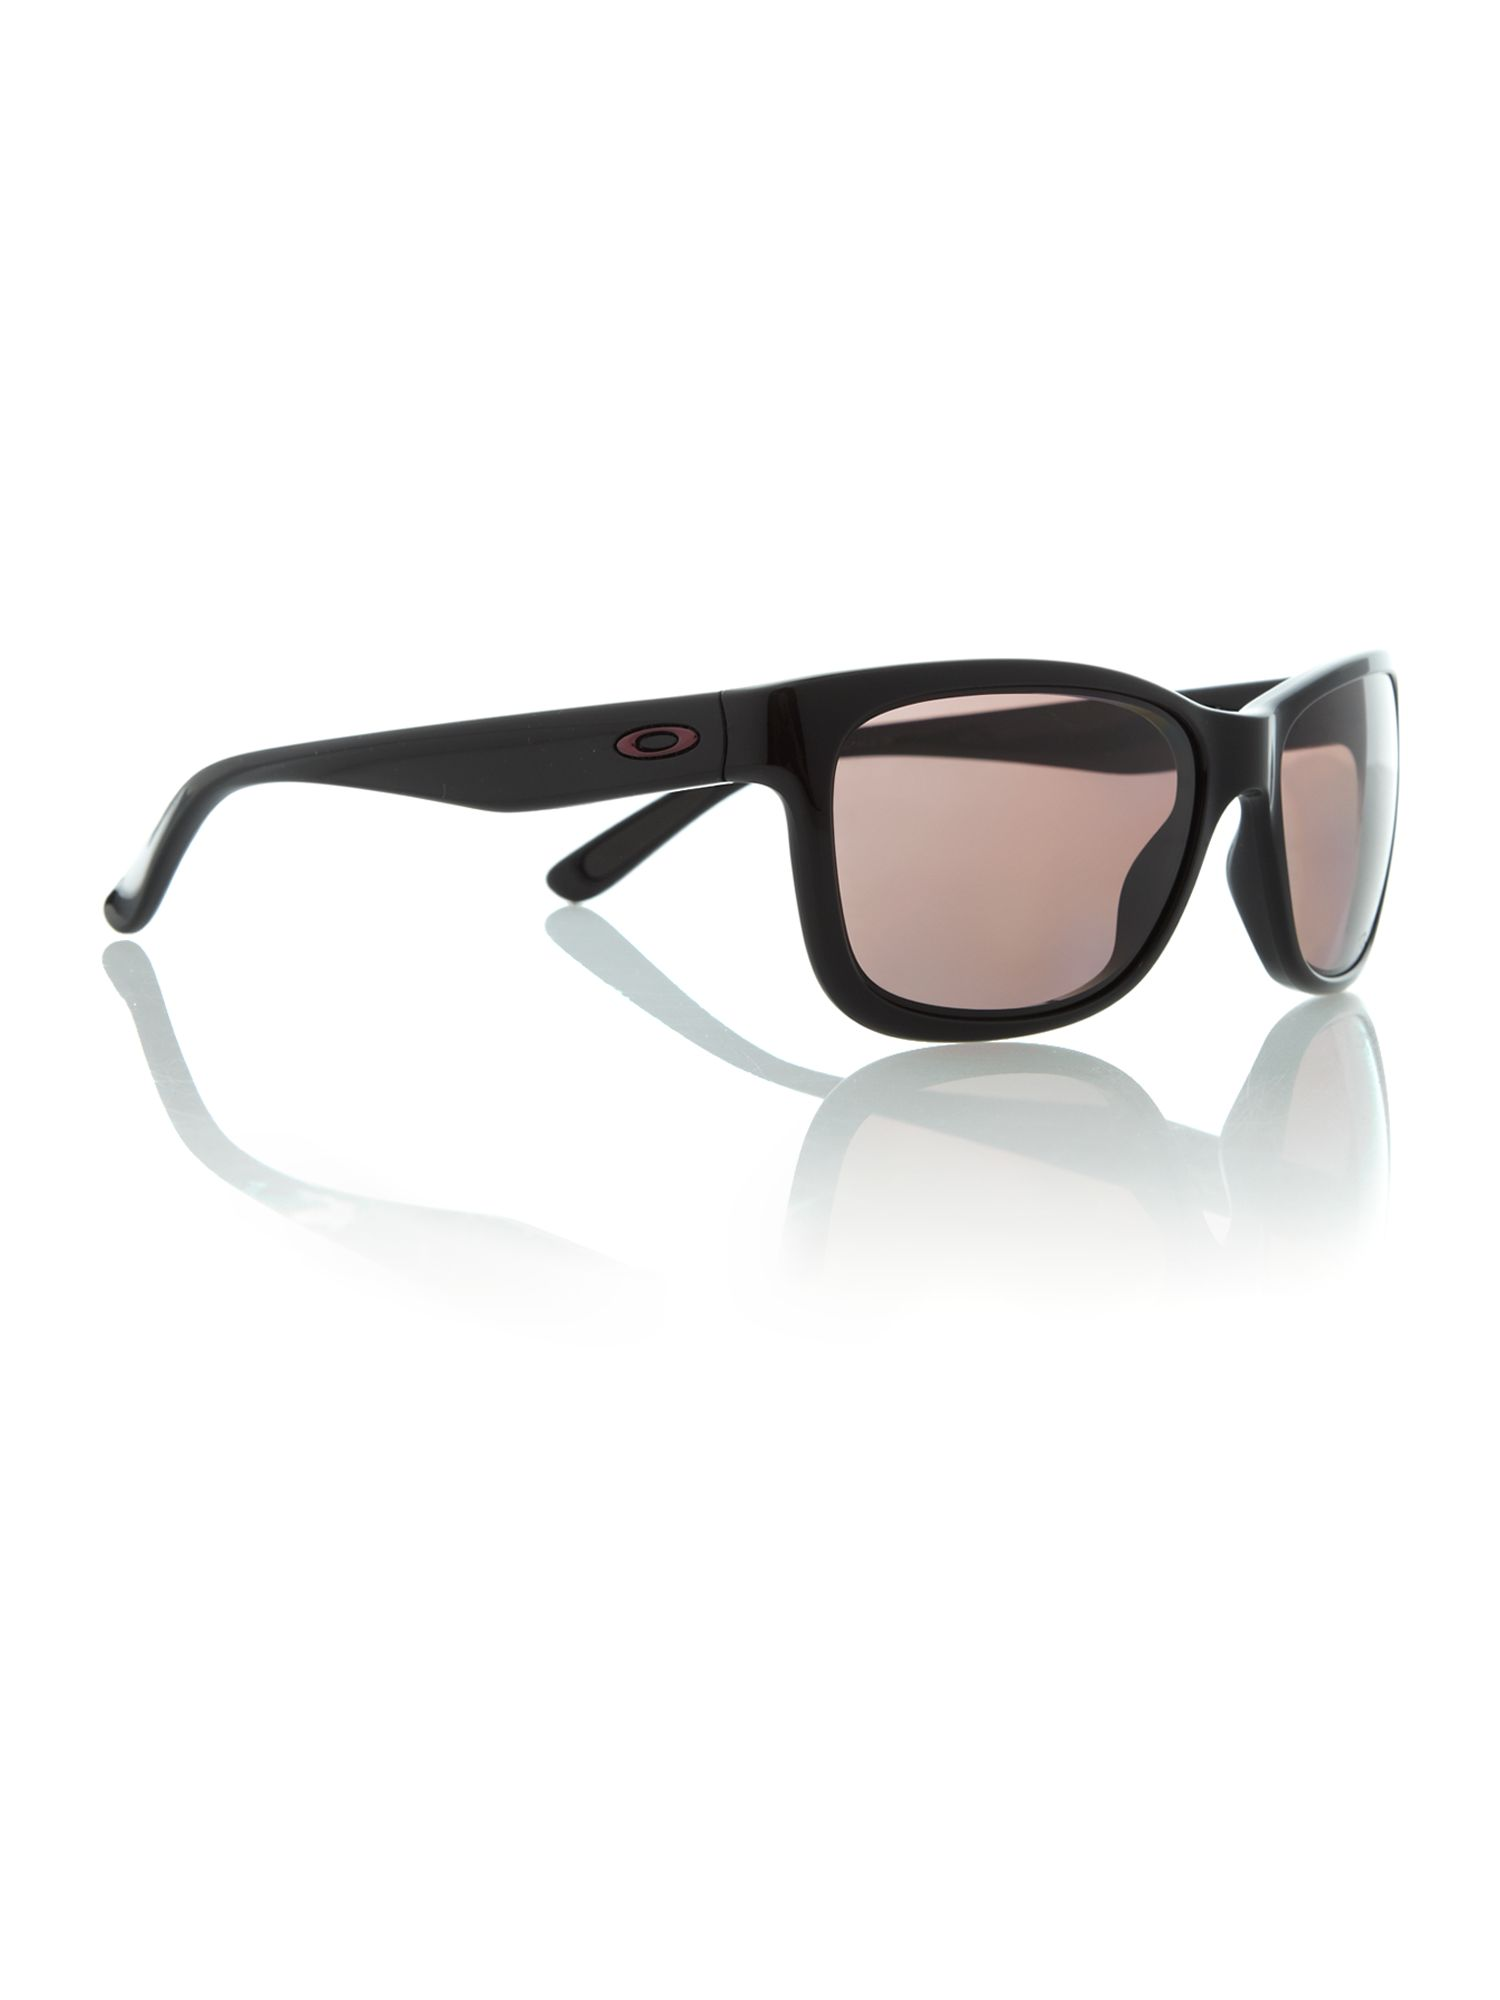 Ladies OO9179 forehand sunglasses